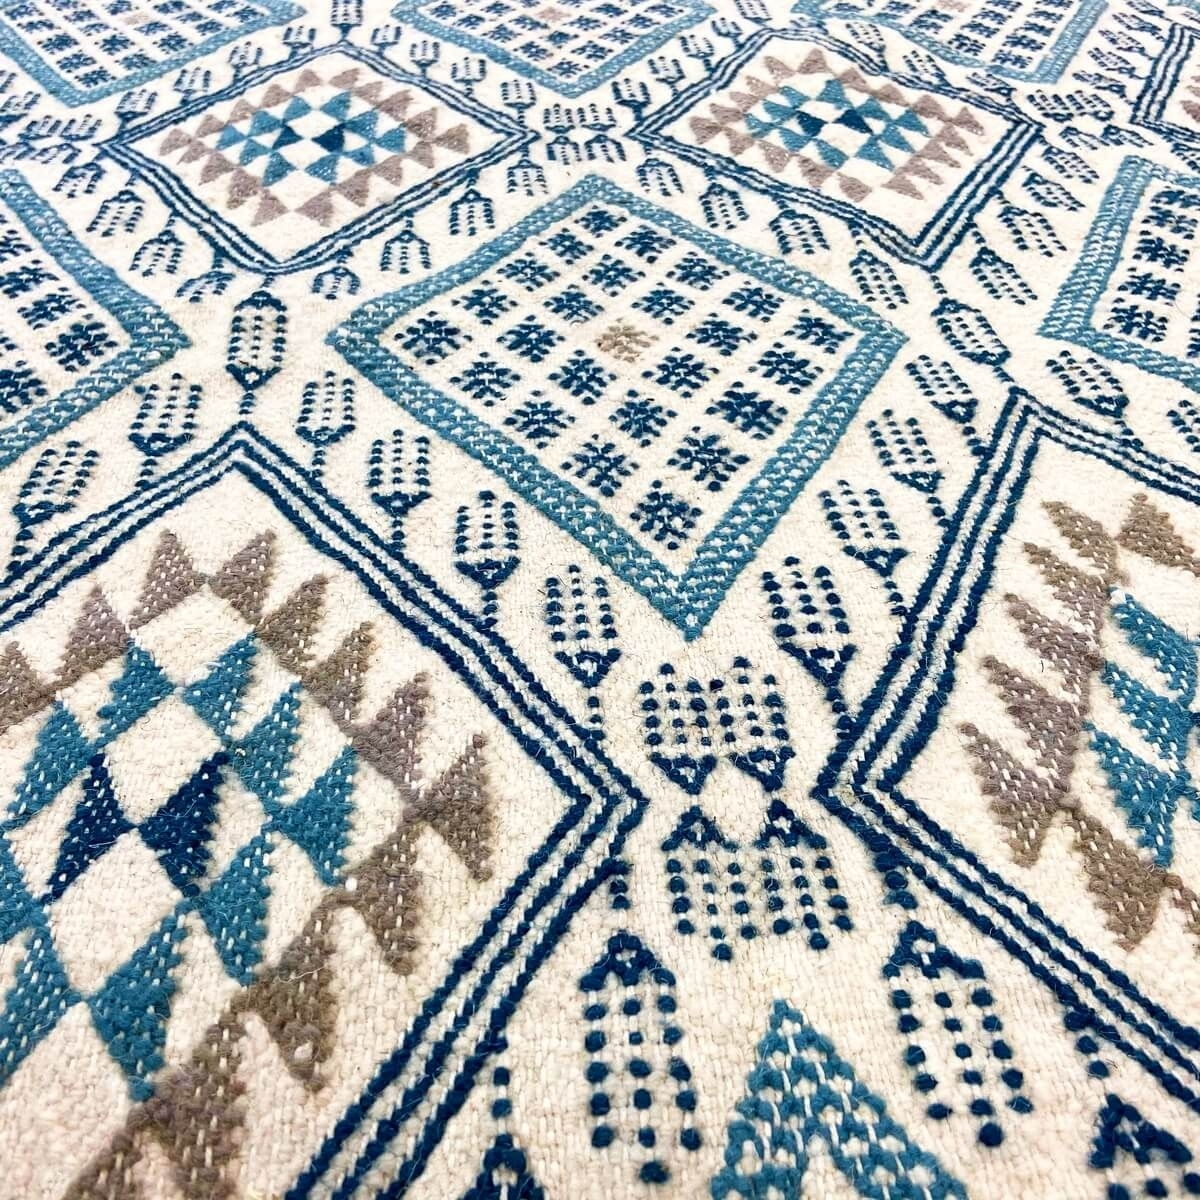 Berber carpet Rug Margoum Louz 171x252 White/Blue (Handmade, Wool, Tunisia) Tunisian margoum rug from the city of Kairouan. Rect